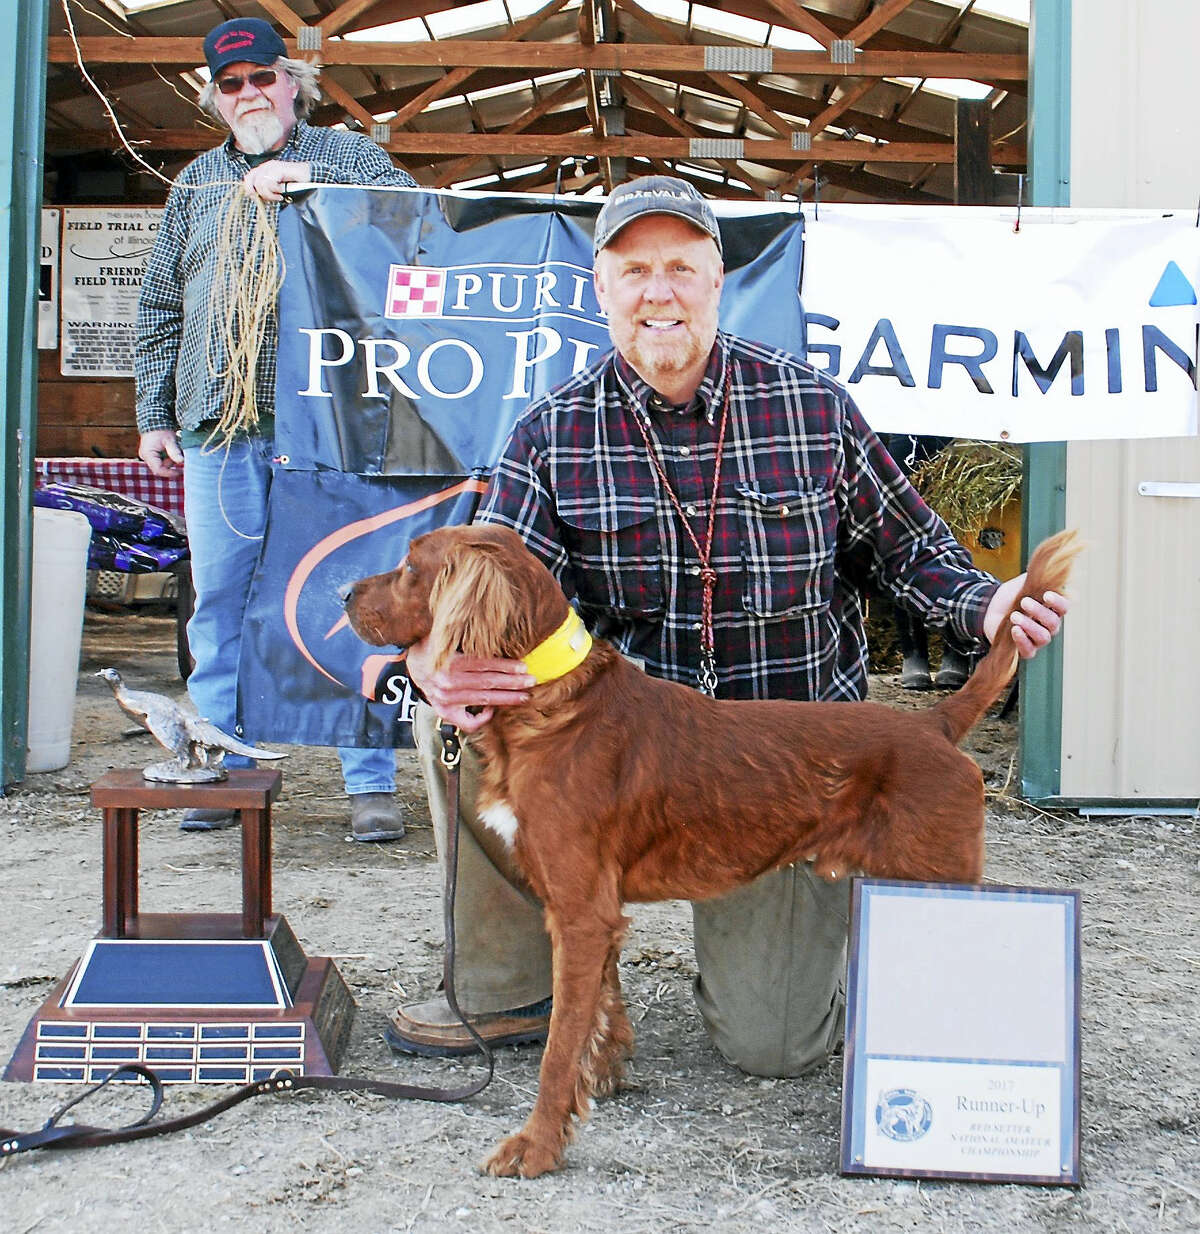 Harwinton resident Gregor McCluskey and his Red Setter, Braeval Laddie, recently won a highly competitive bird dog field trial championship in Illinois.